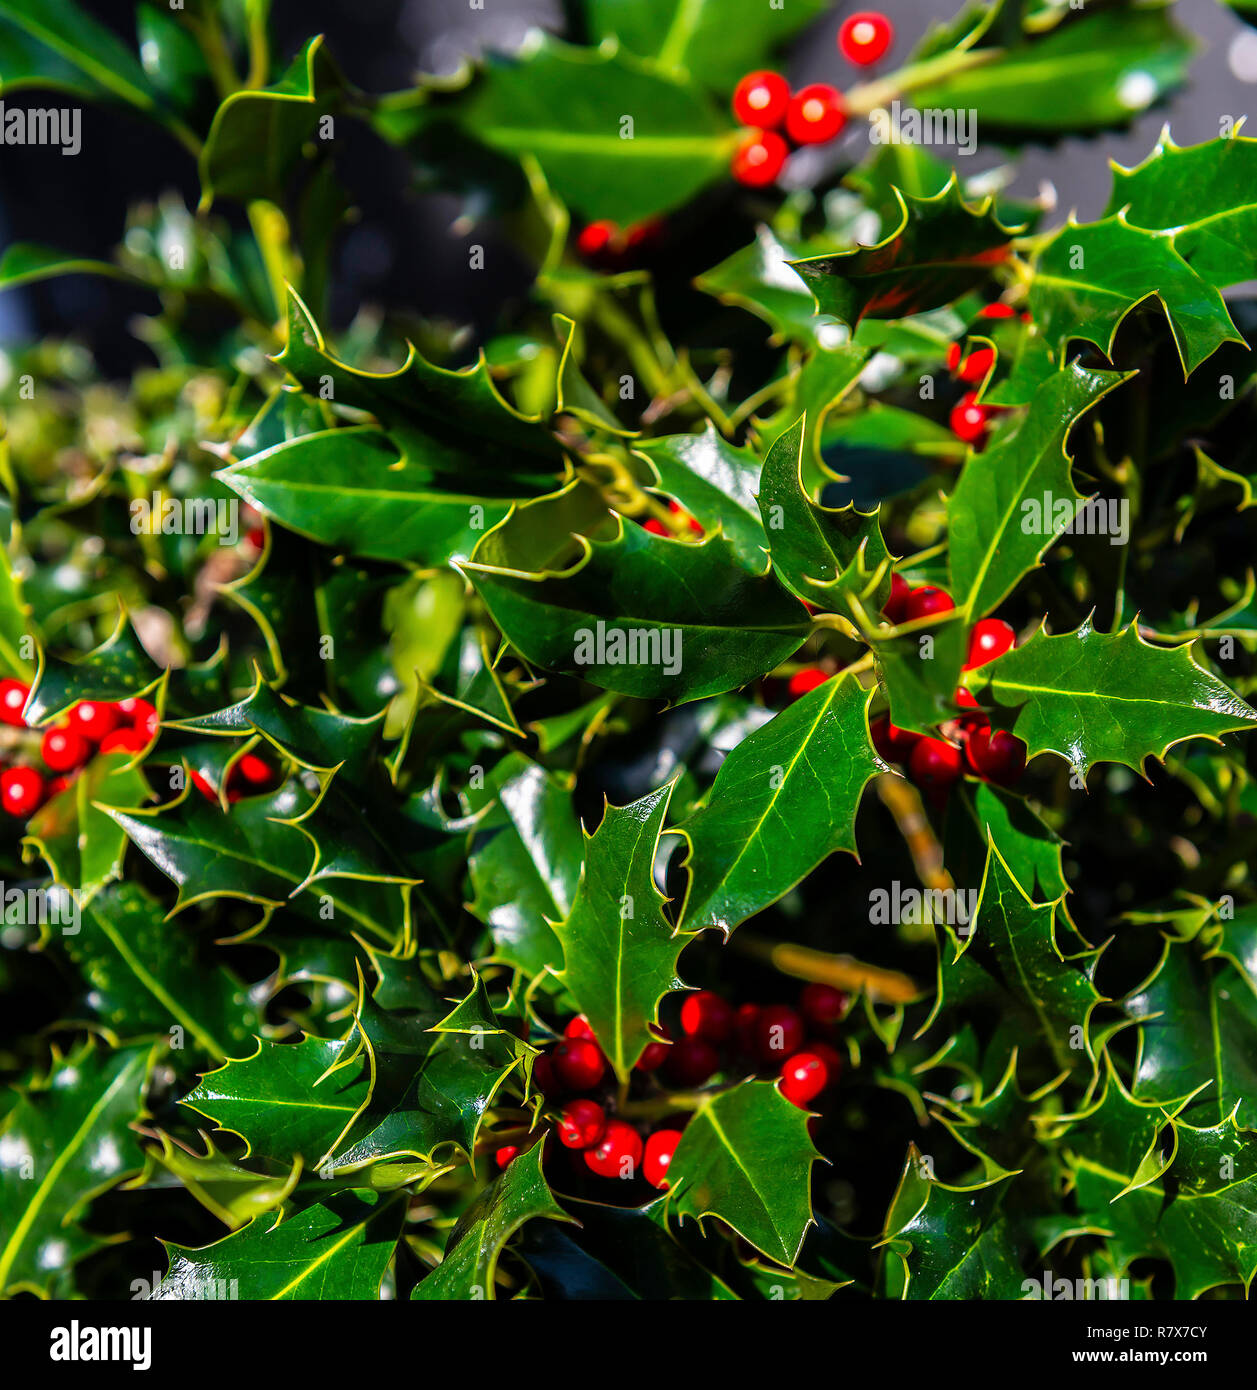 Holly Bush With Red Berries The Prickly Green Plant And Its Red